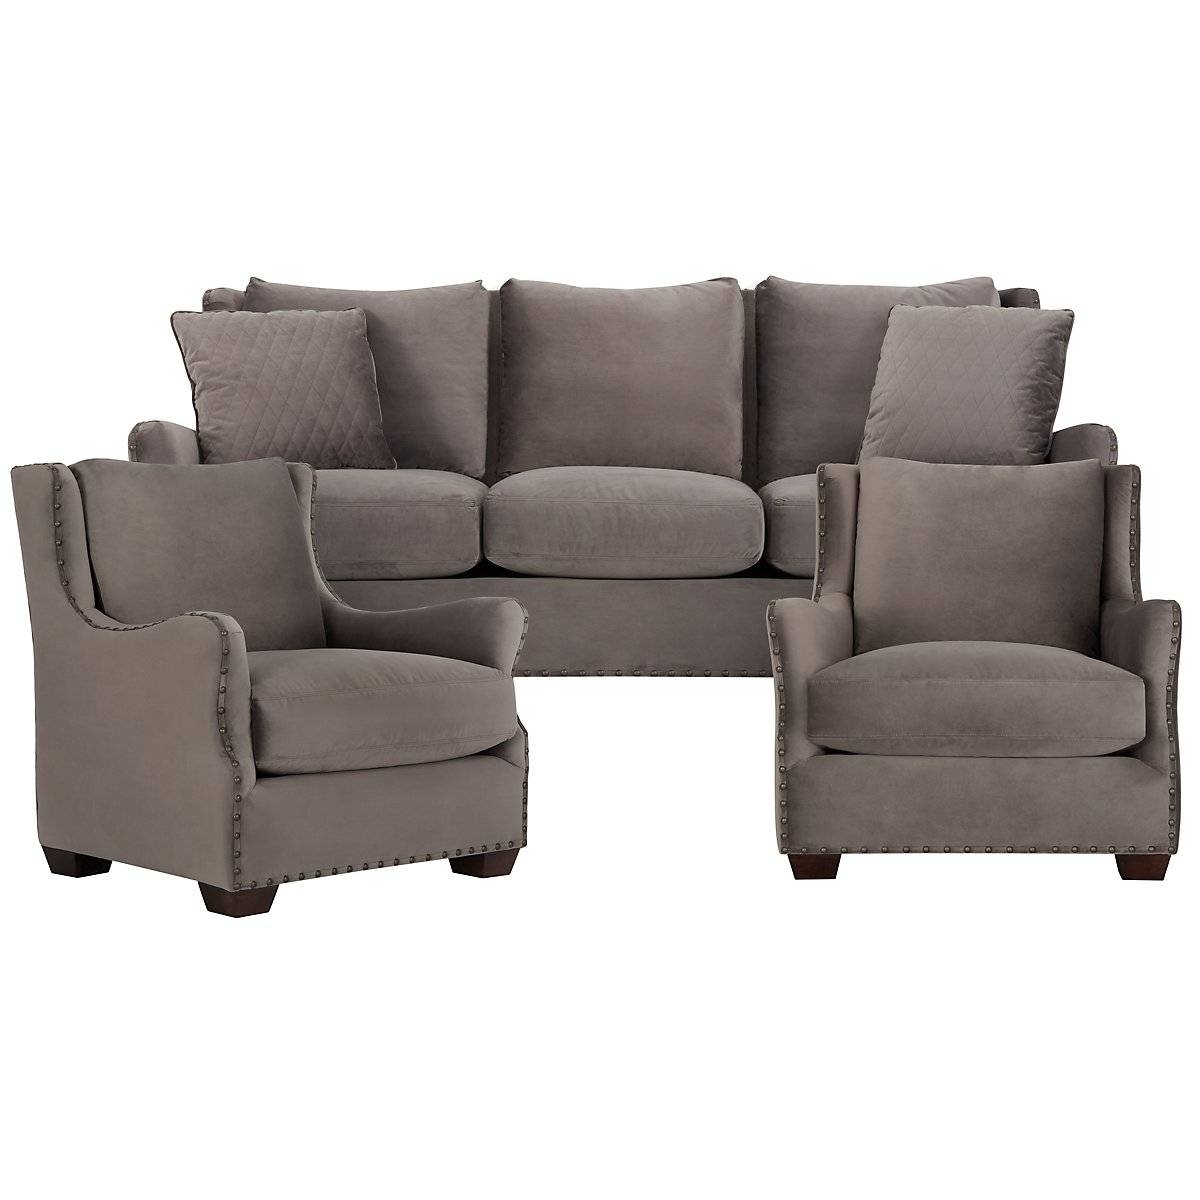 Furniture: Comfortable Gray Microfiber Couch For Elegant Living for Gray Leather Sectional Sofas (Image 12 of 30)